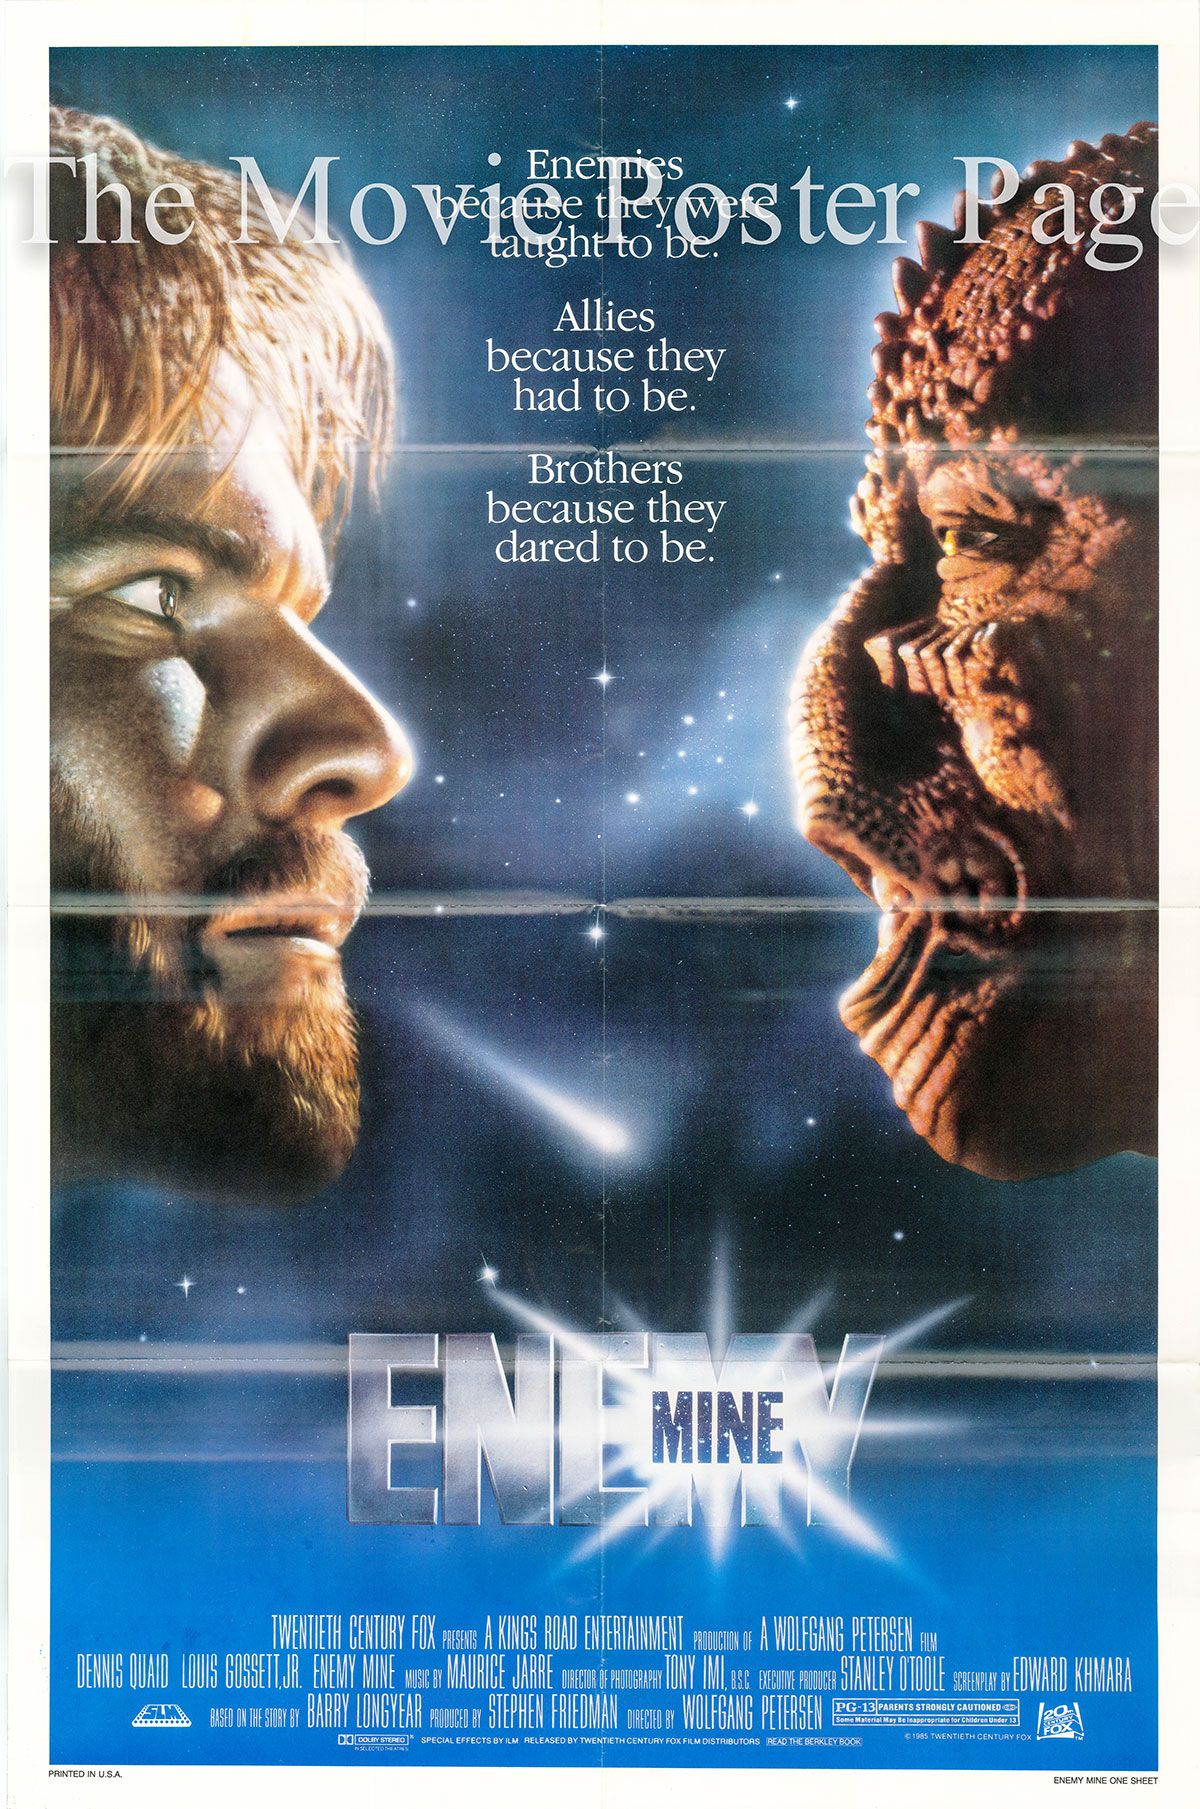 Pictured is a US one-sheet for  the 1985 Wolfgang Peterson film Enemy Mine starring Dennis Quaid as Willis Davidge.